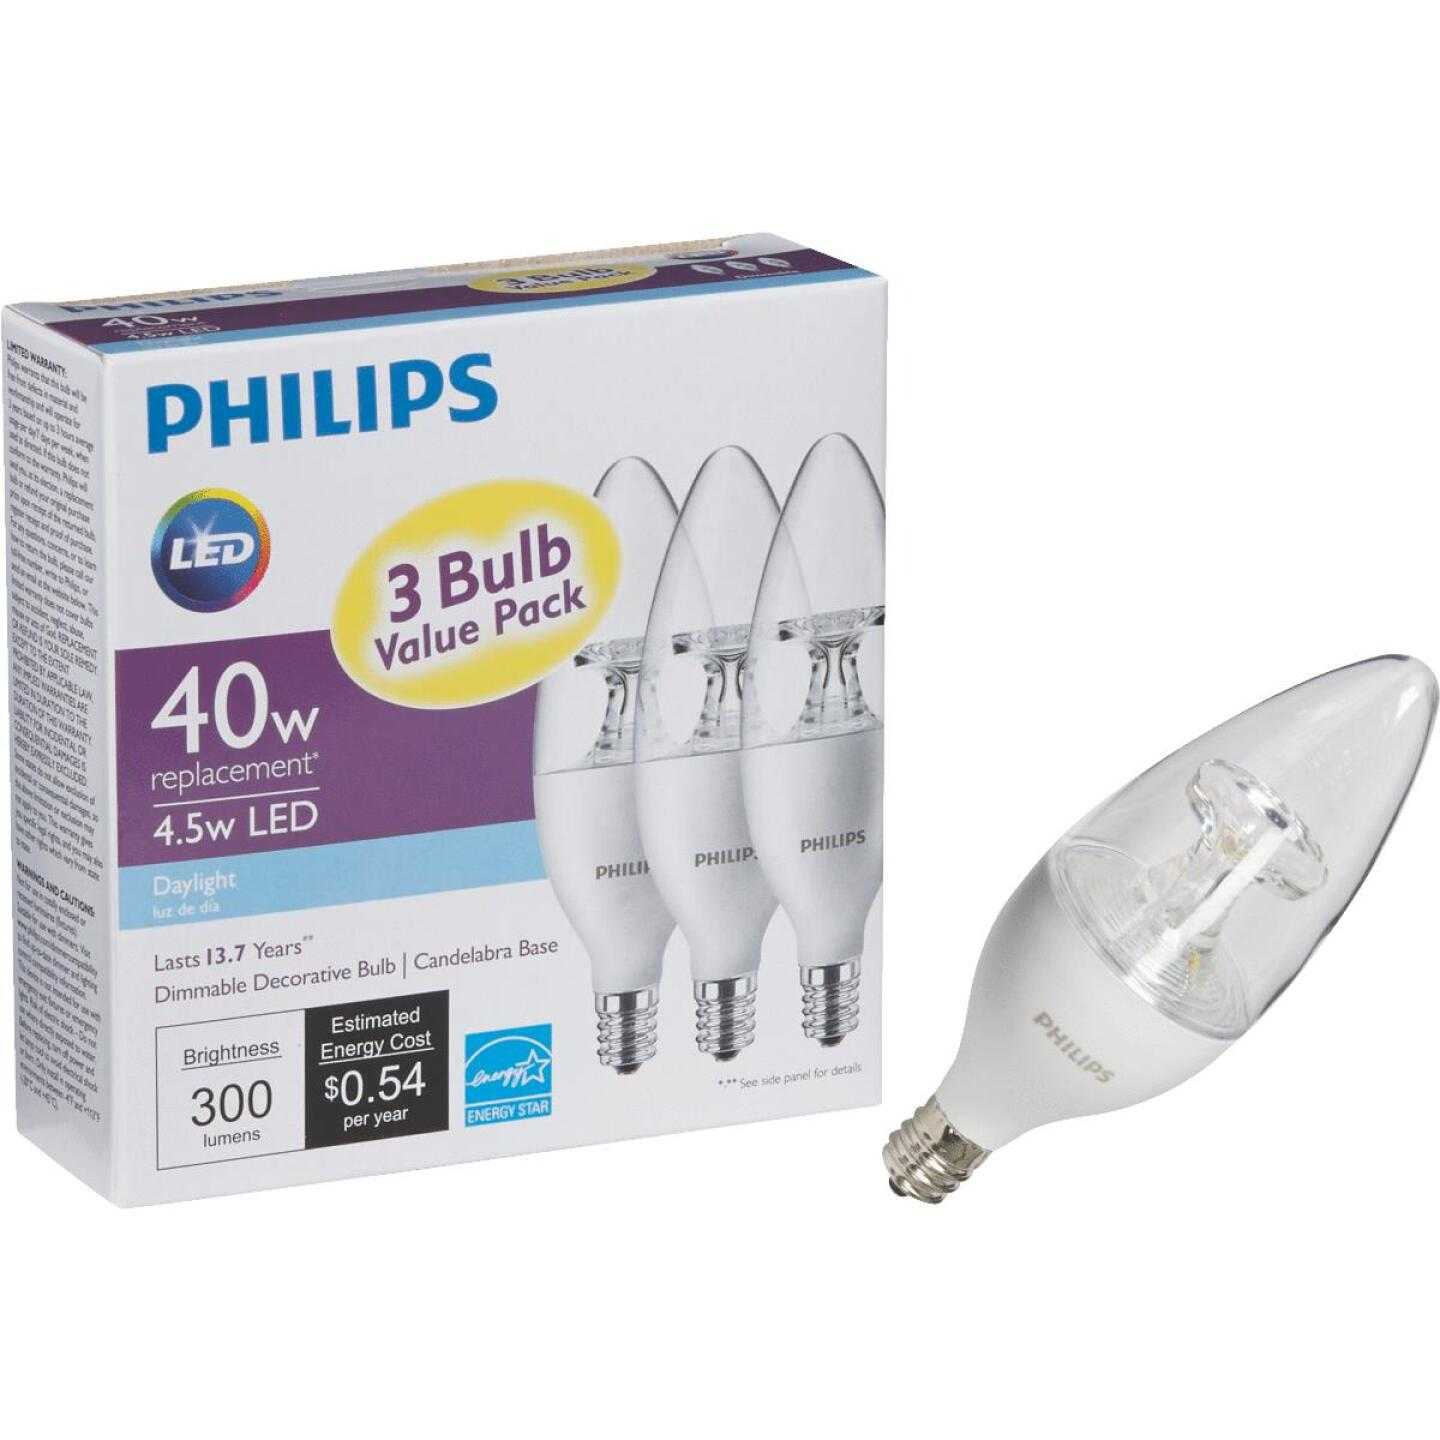 Philips 40W Equivalent Daylight B11 Candelabra Dimmable LED Decorative Light Bulb (3-Pack) Image 1